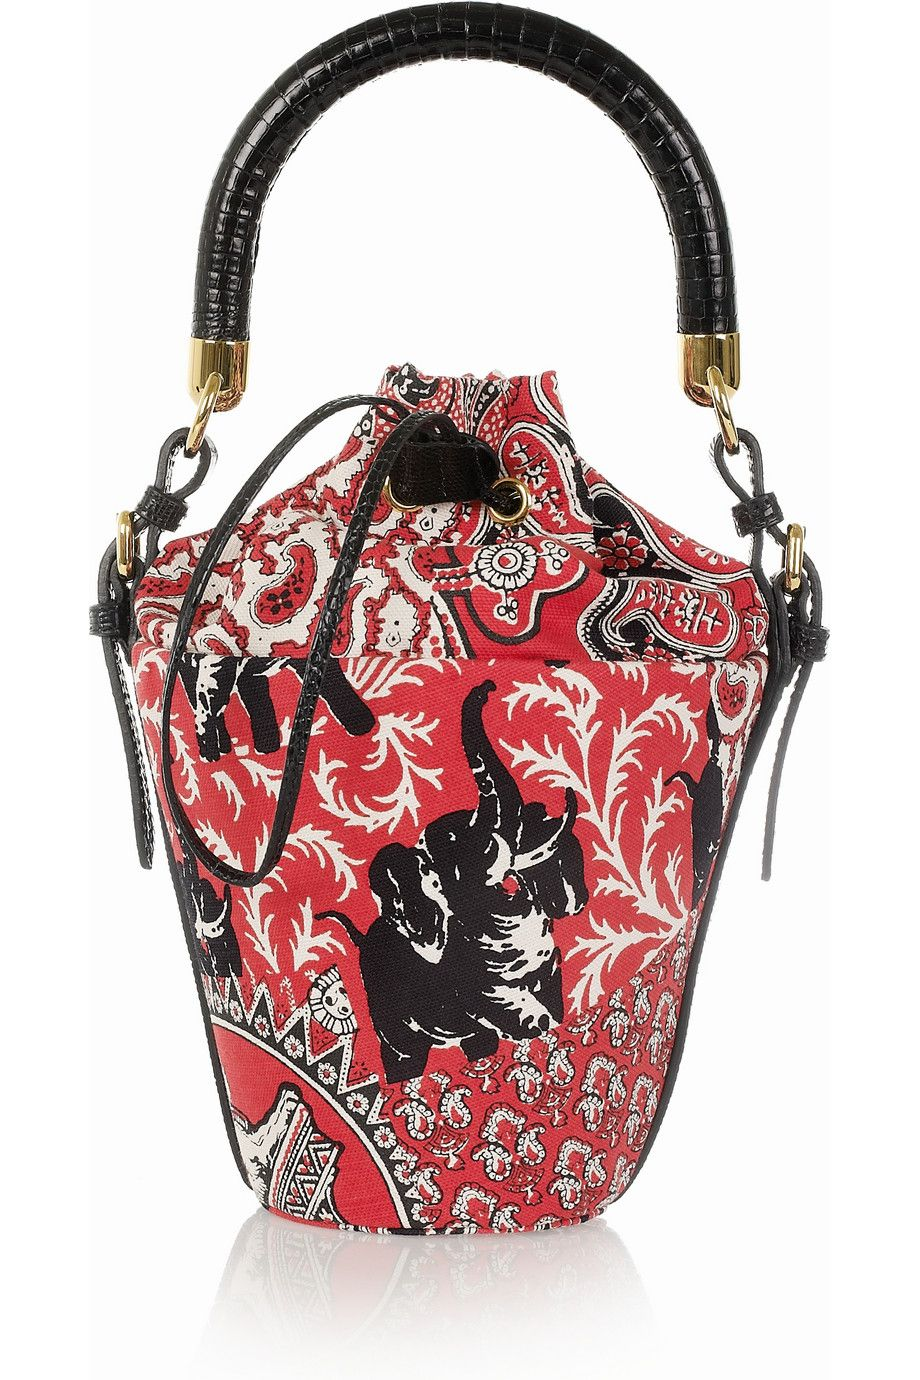 Miu Miu   Printed cotton-canvas mini bucket bag   NET-A-PORTER.COM ... 3d125b1777